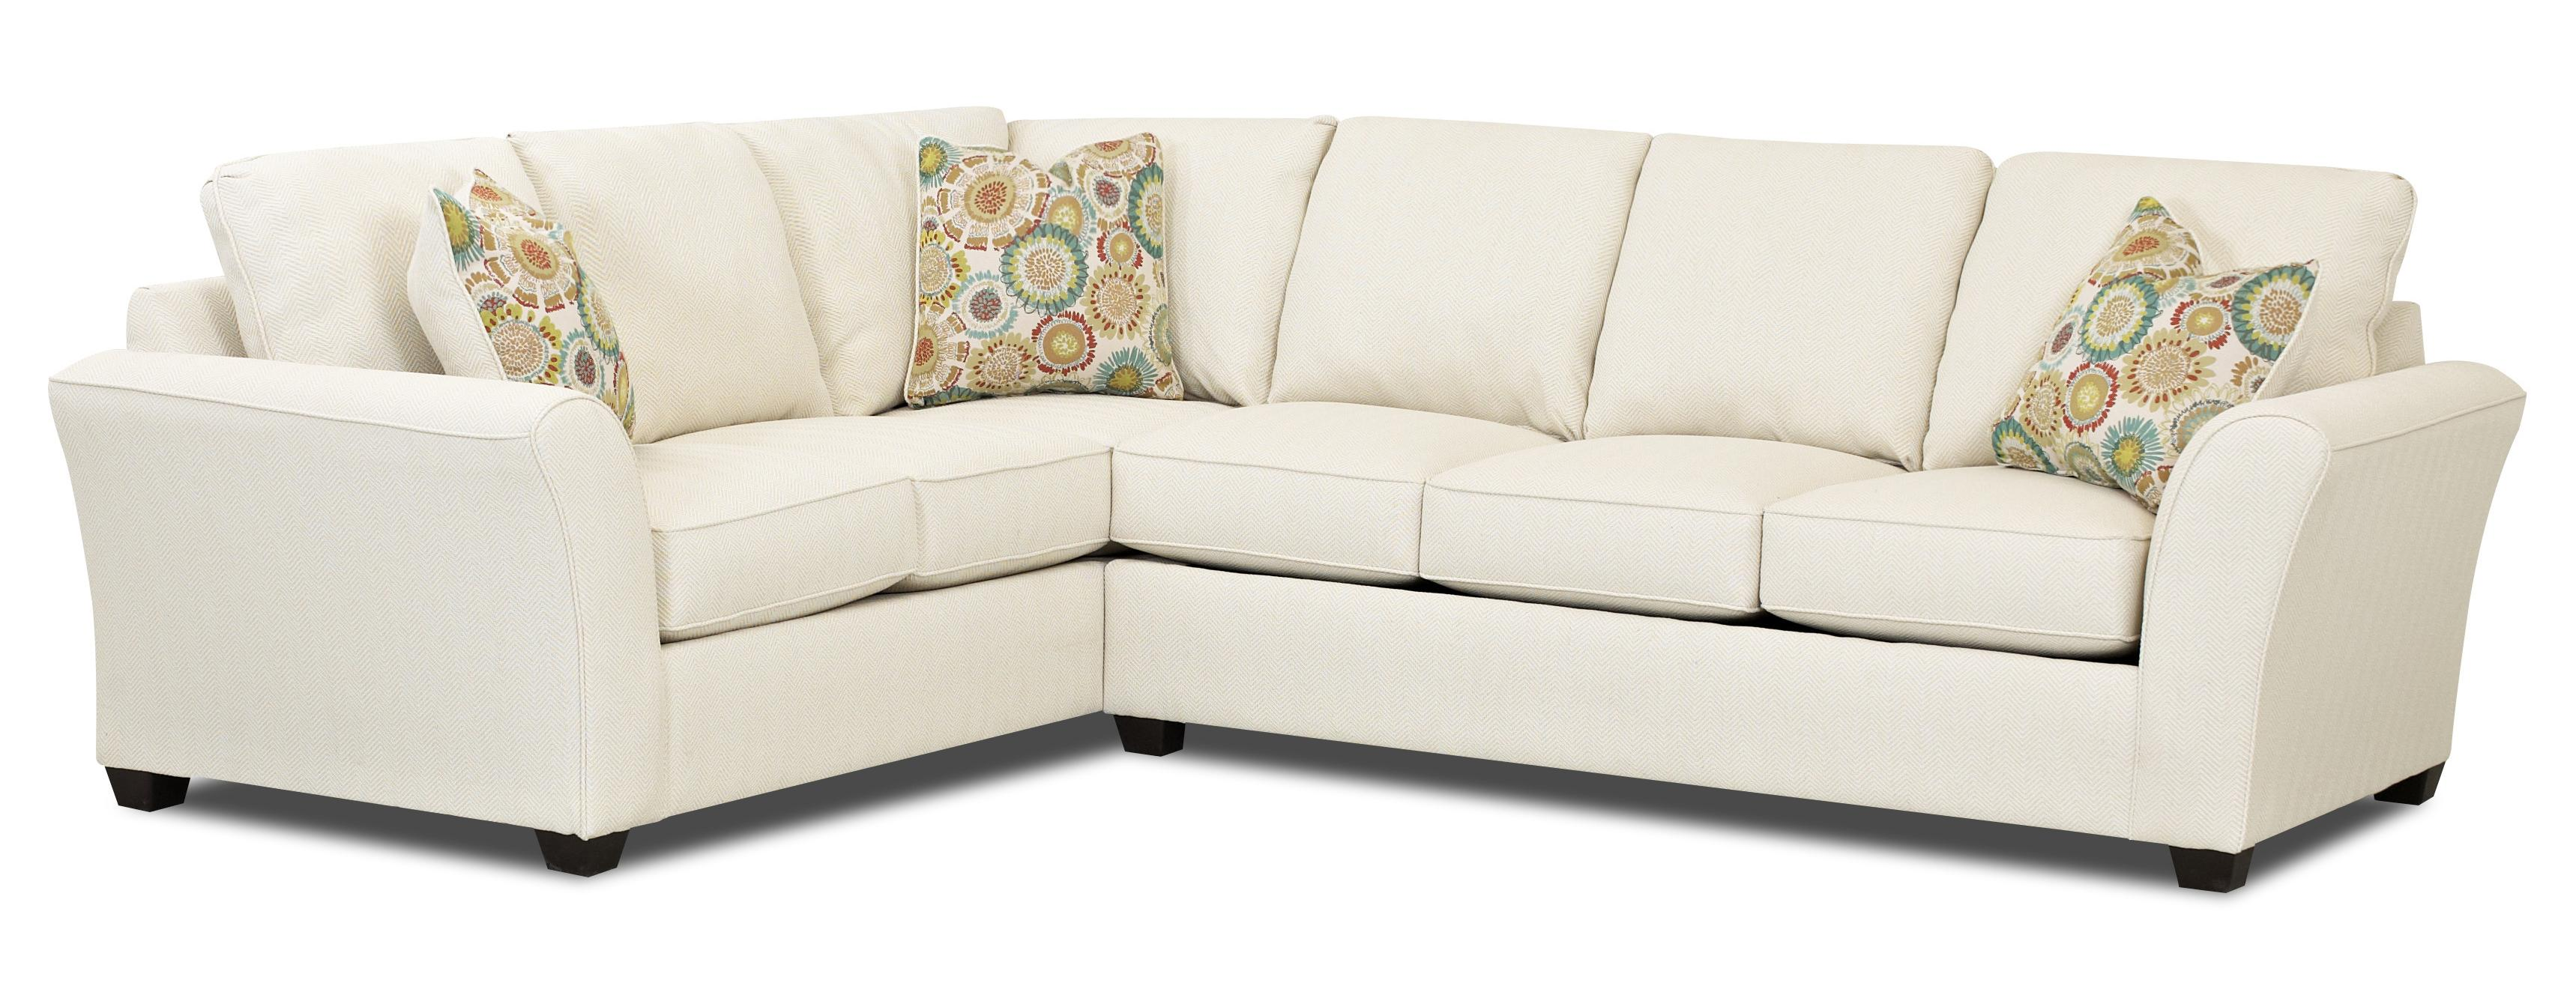 Sleeper Sectional Of Transitional Sectional Sleeper Sofa With Dreamquest